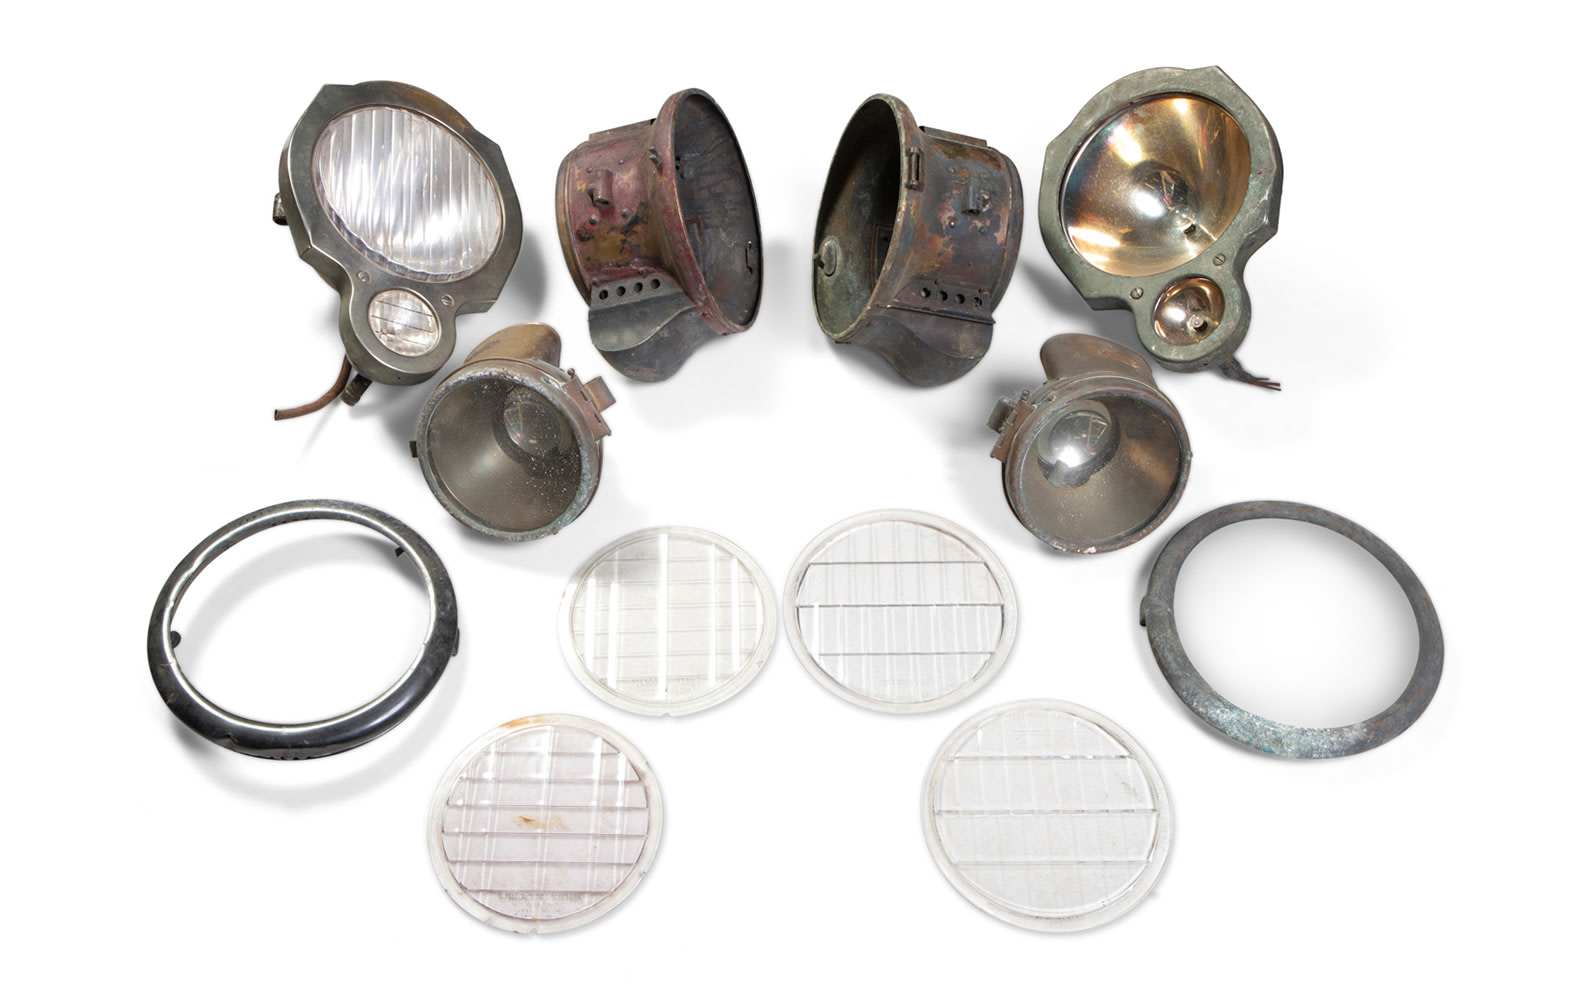 Assorted Pre-1920 Headlamps for Packards as well as Parts from BRC Headlamps